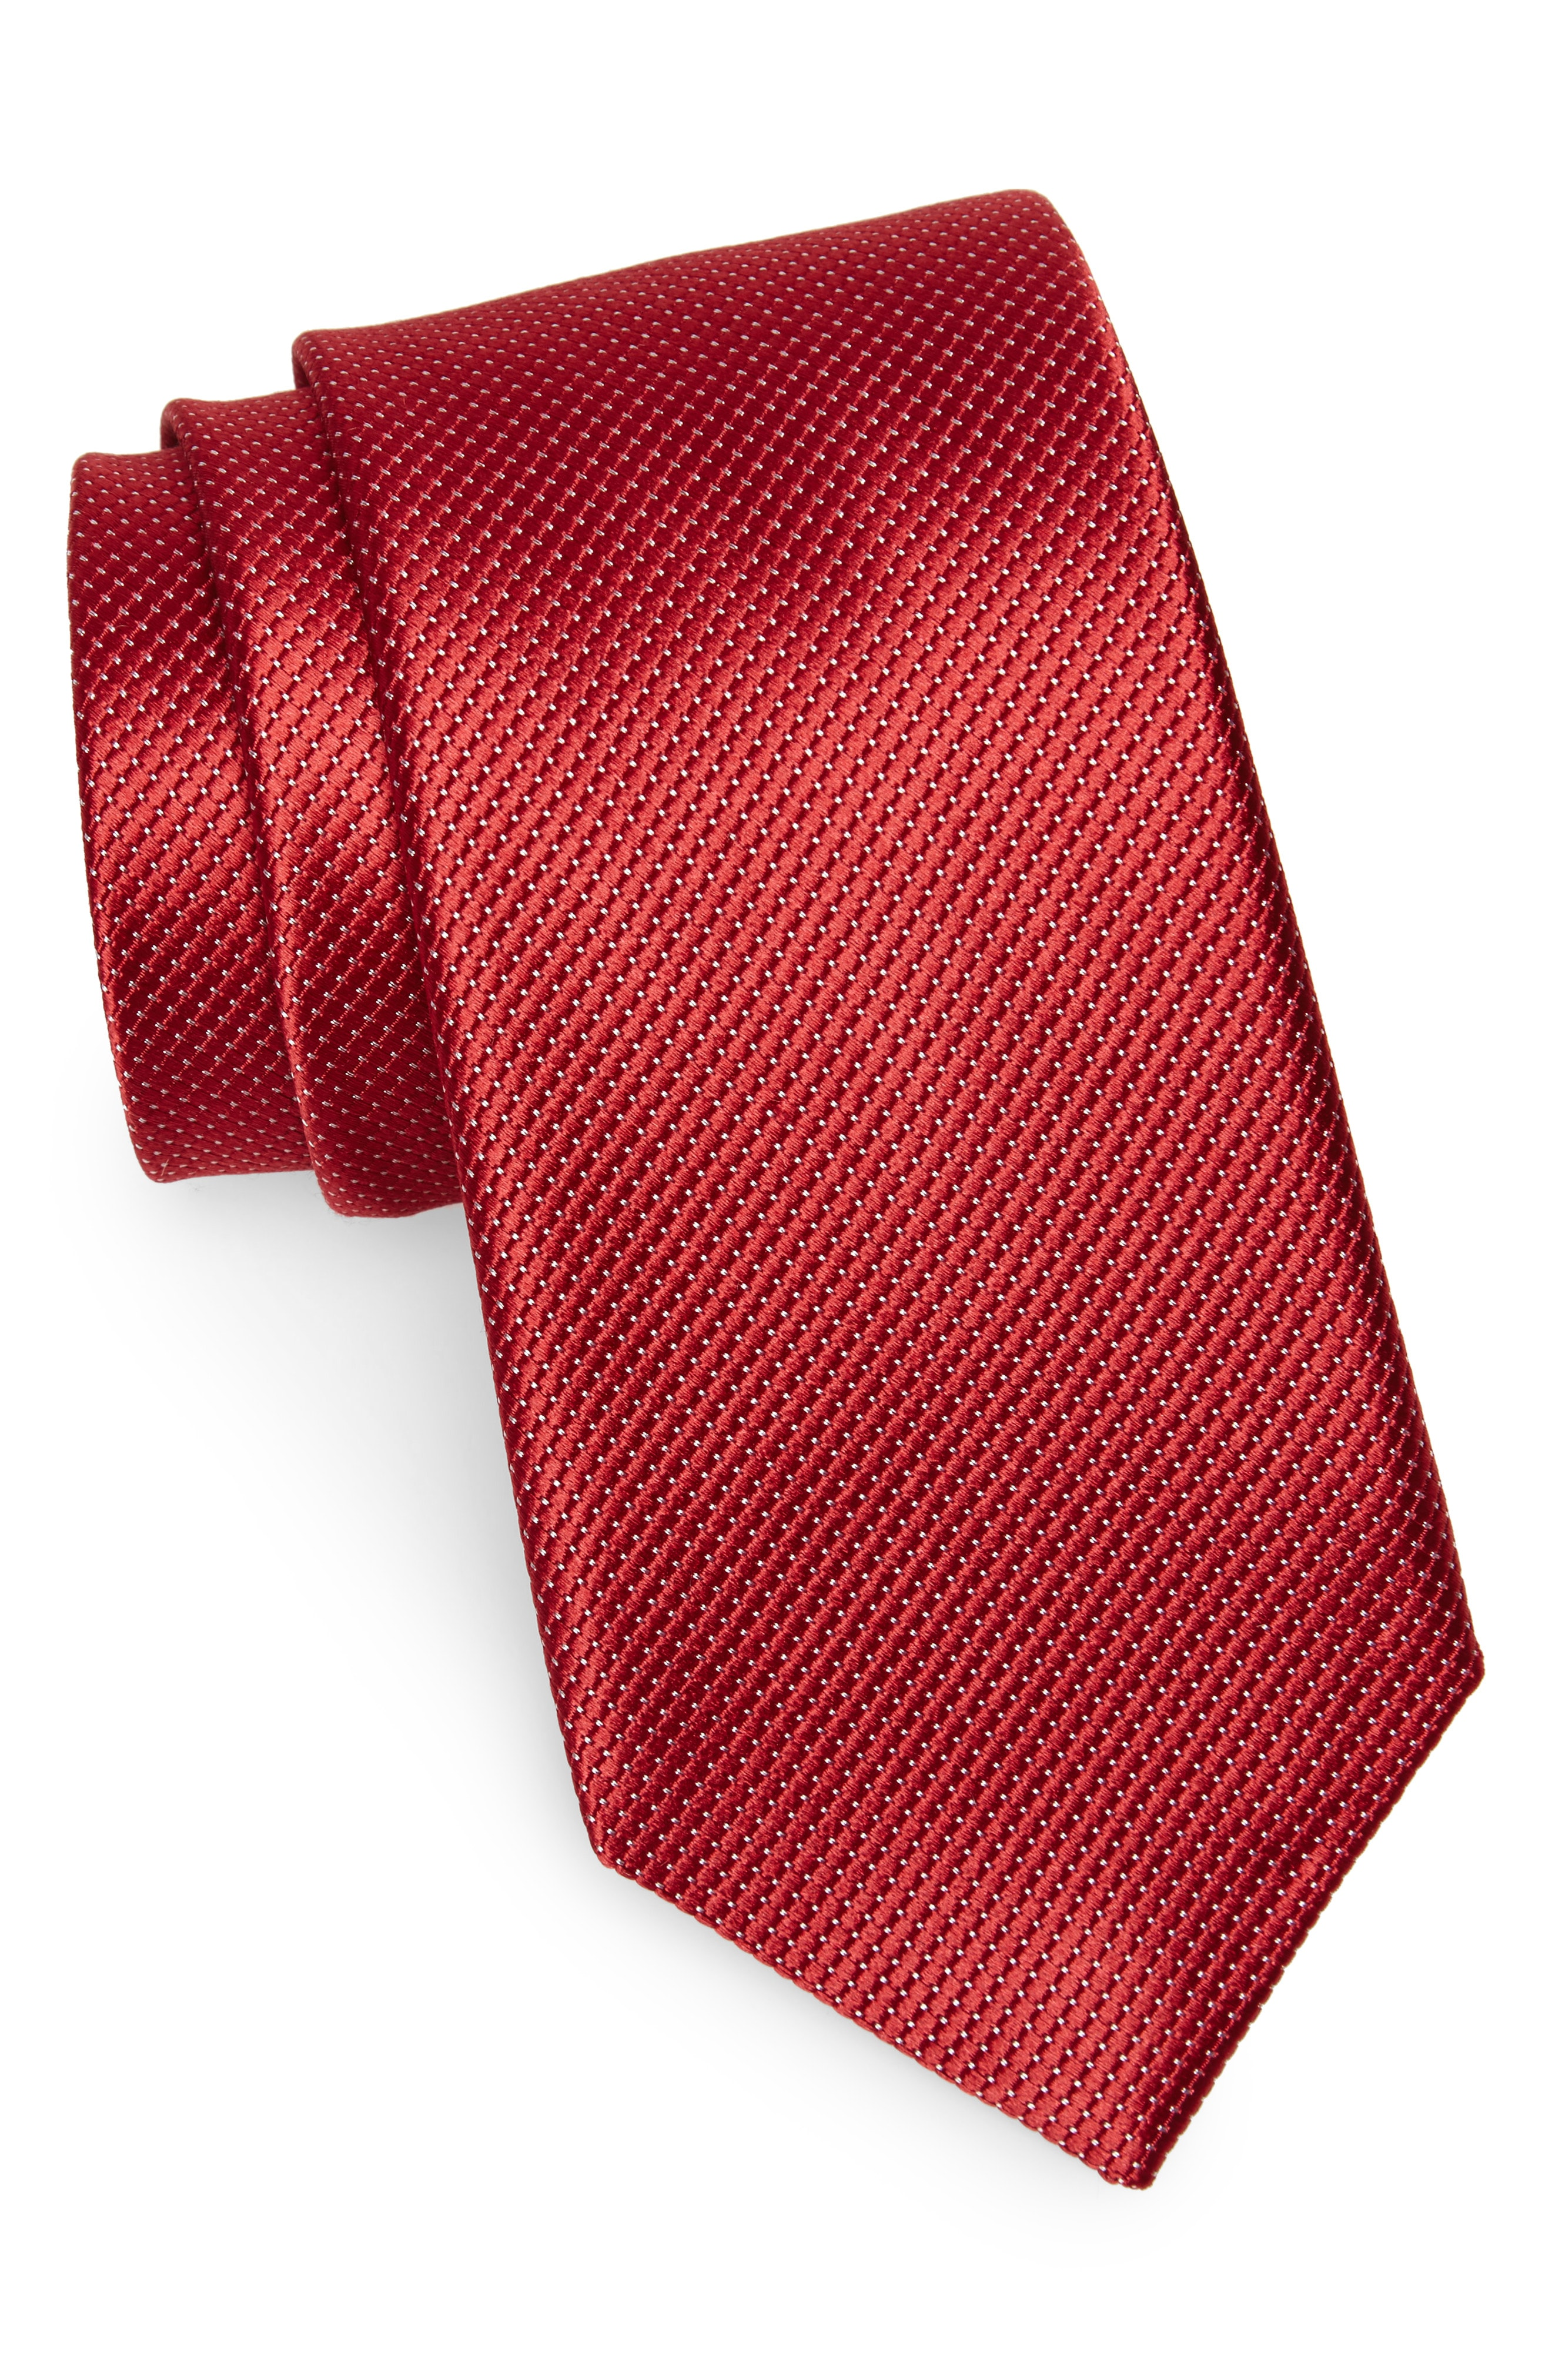 Men's Solid Ties, Skinny Ties & Pocket Squares for Men | Nordstrom